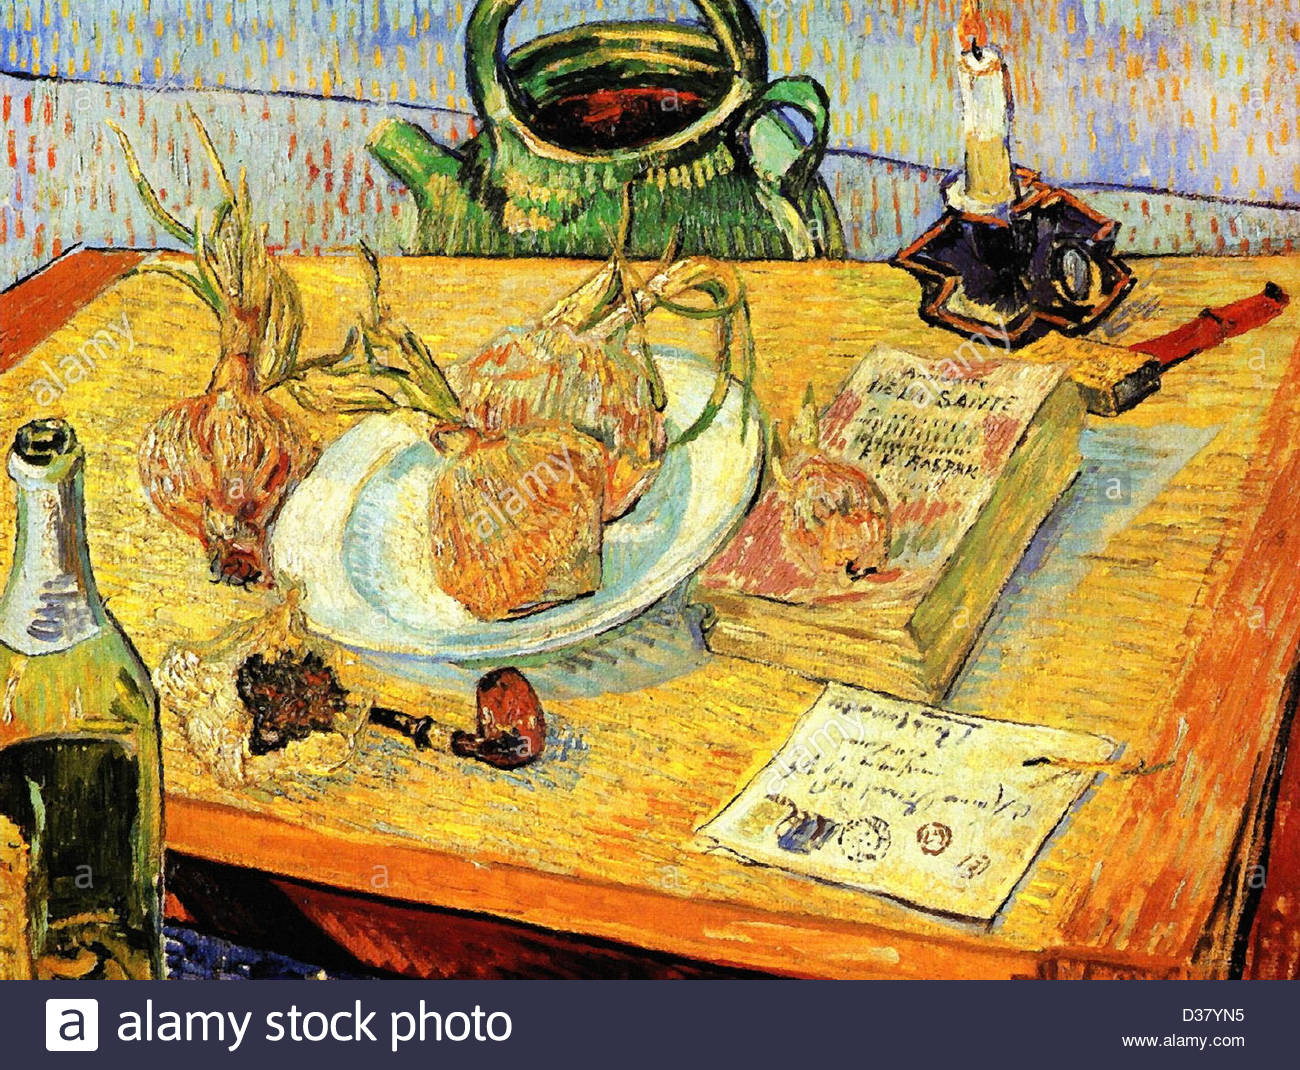 Vincent van Gogh, Still Life with Drawing Board, Pipe, Onions and Sealing-Wax. 1889